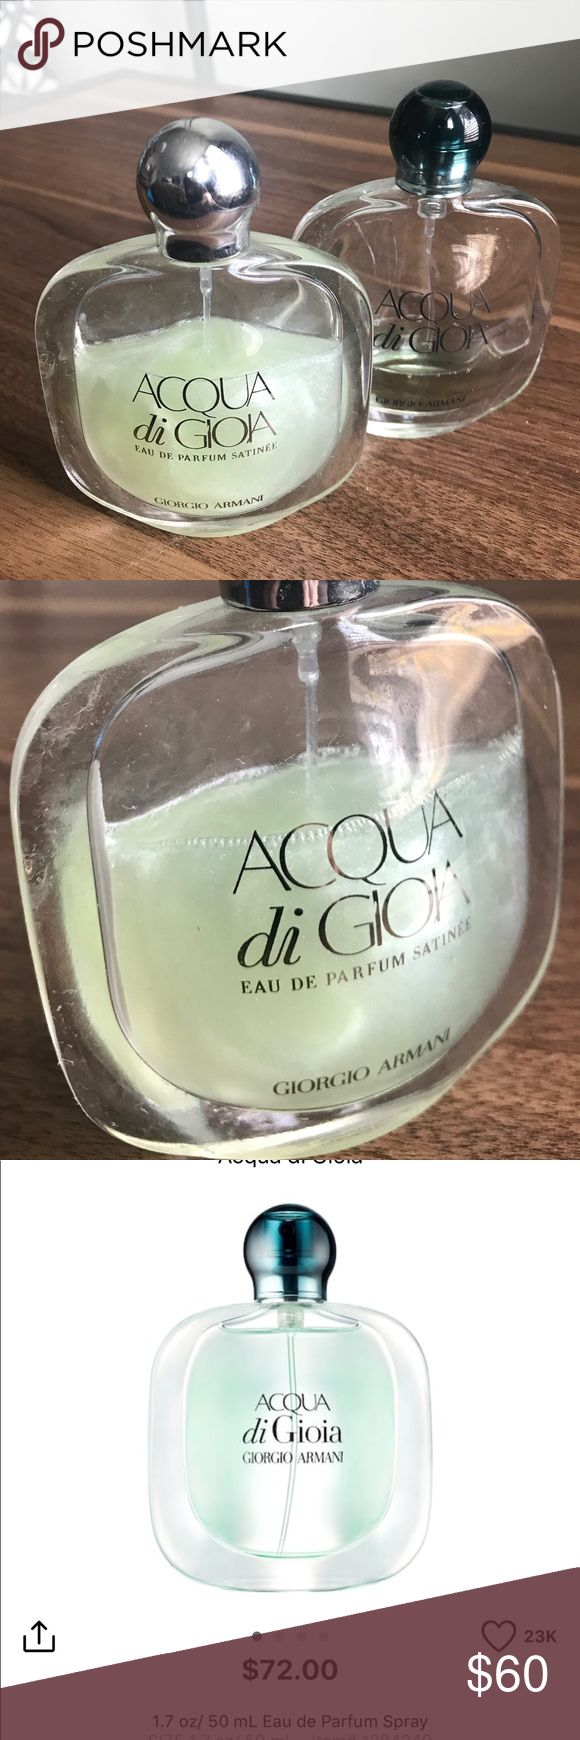 giorgio armani acqua di gioia limit edition bundle giorgio armani acqua di gioia limited edition shimmer summer perfume 3/4 full and original perfume bundle making one full bottle. The shimmer perfume give a very light luminous look on your skin. The don't make this anymore. 100% authentic. Giorgio Armani Other